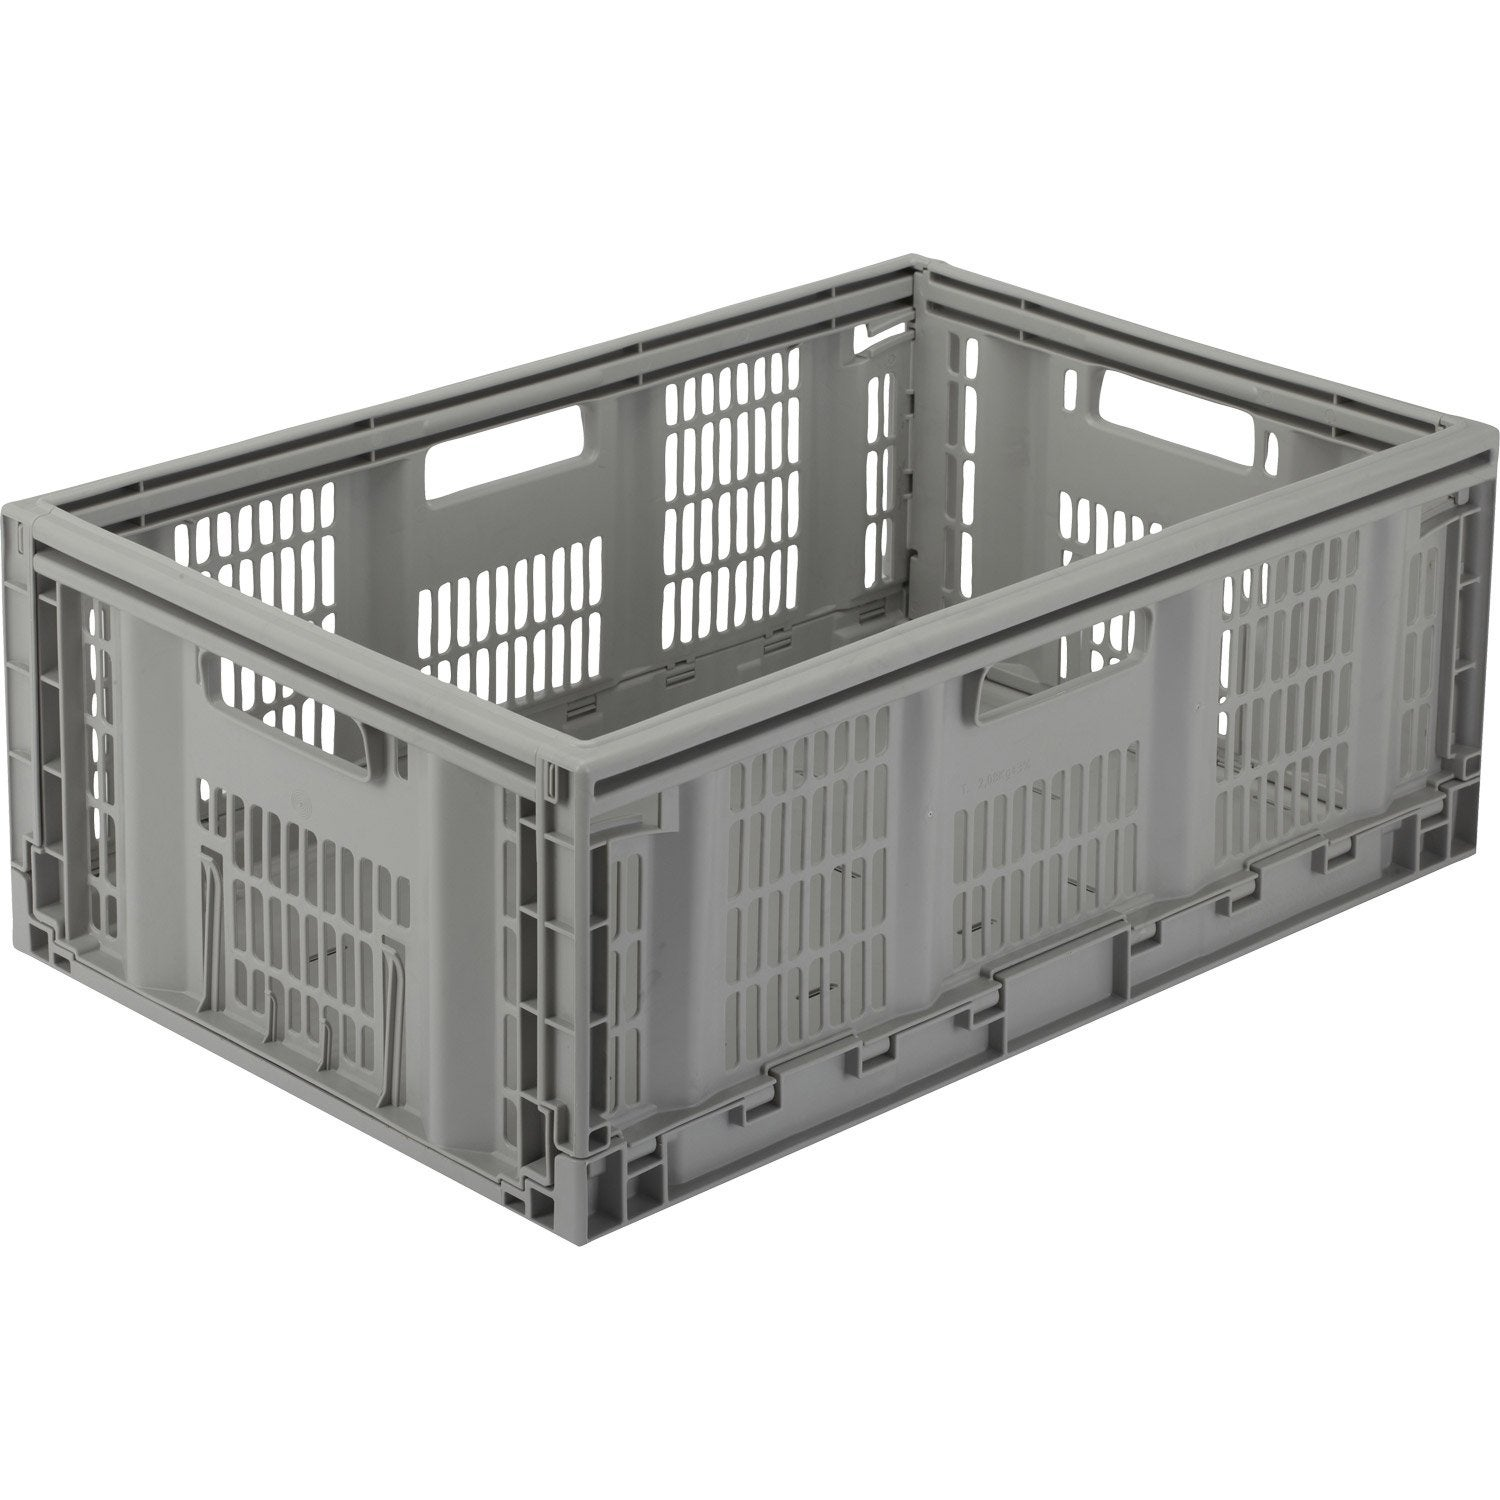 Casier pliable teknika en plastique l 60 x p 40 x h 22 - Casier rangement leroy merlin ...